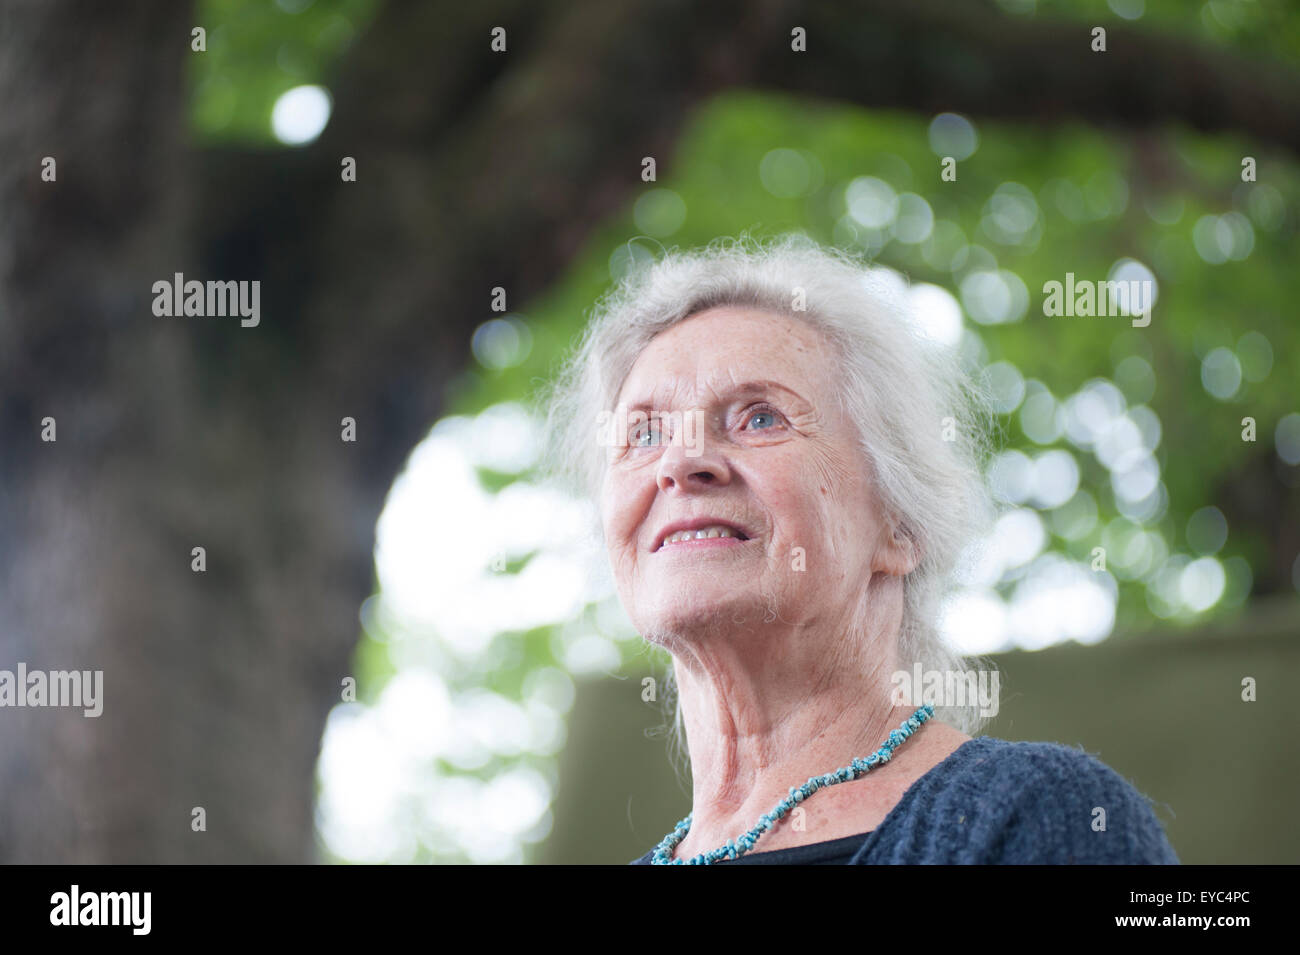 British literary critic and academic, Gillian Beer appearing at the Edinburgh International Book Festival. - Stock Image